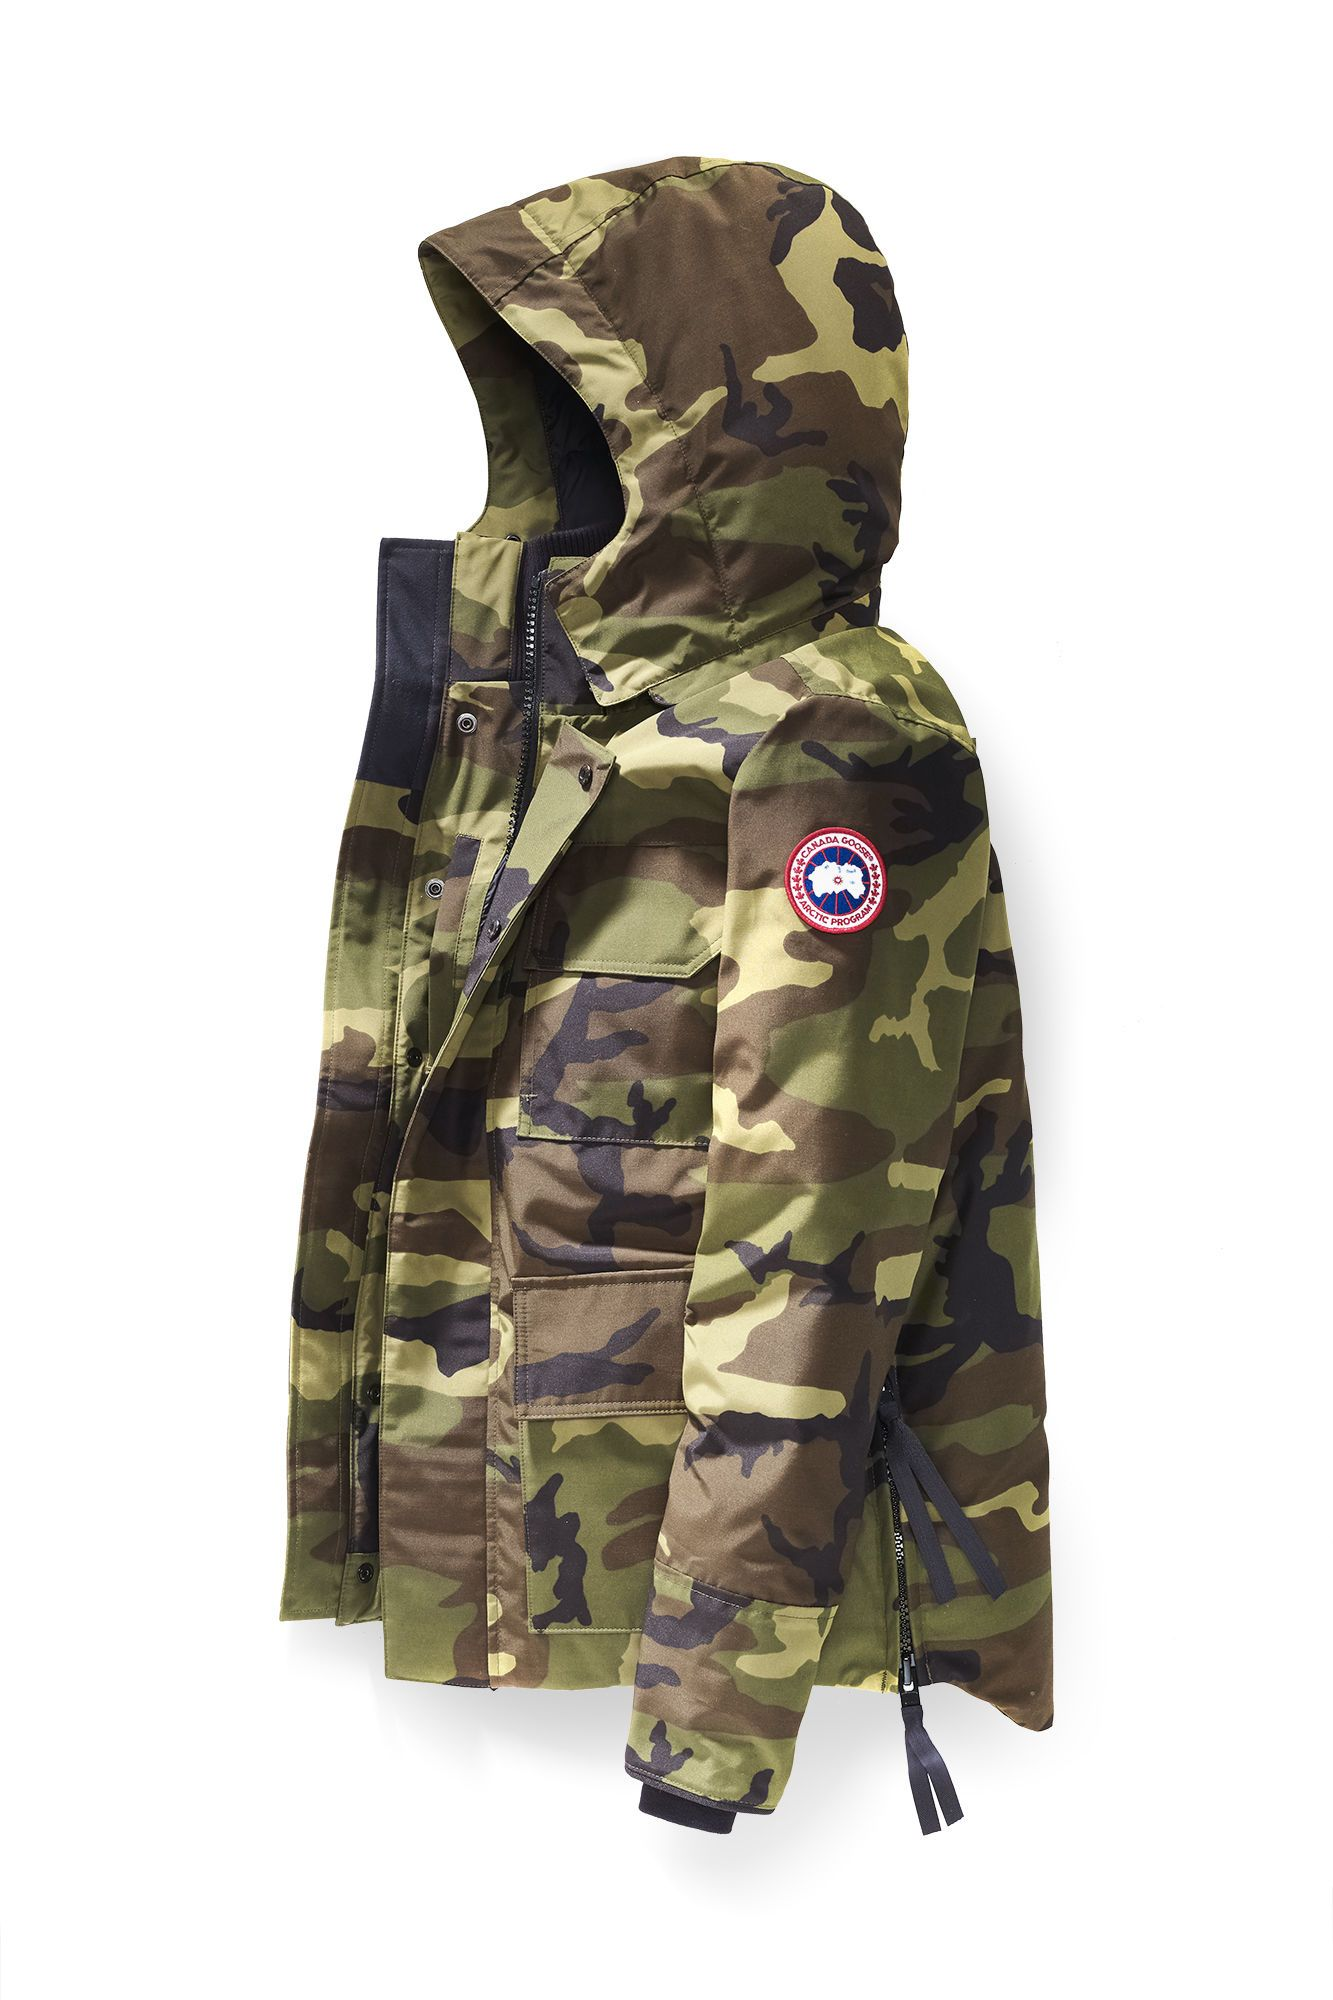 8f8ac6a126d58 Canada Goose Maitland Parka- Camo | Style... in 2019 | Mens parka ...